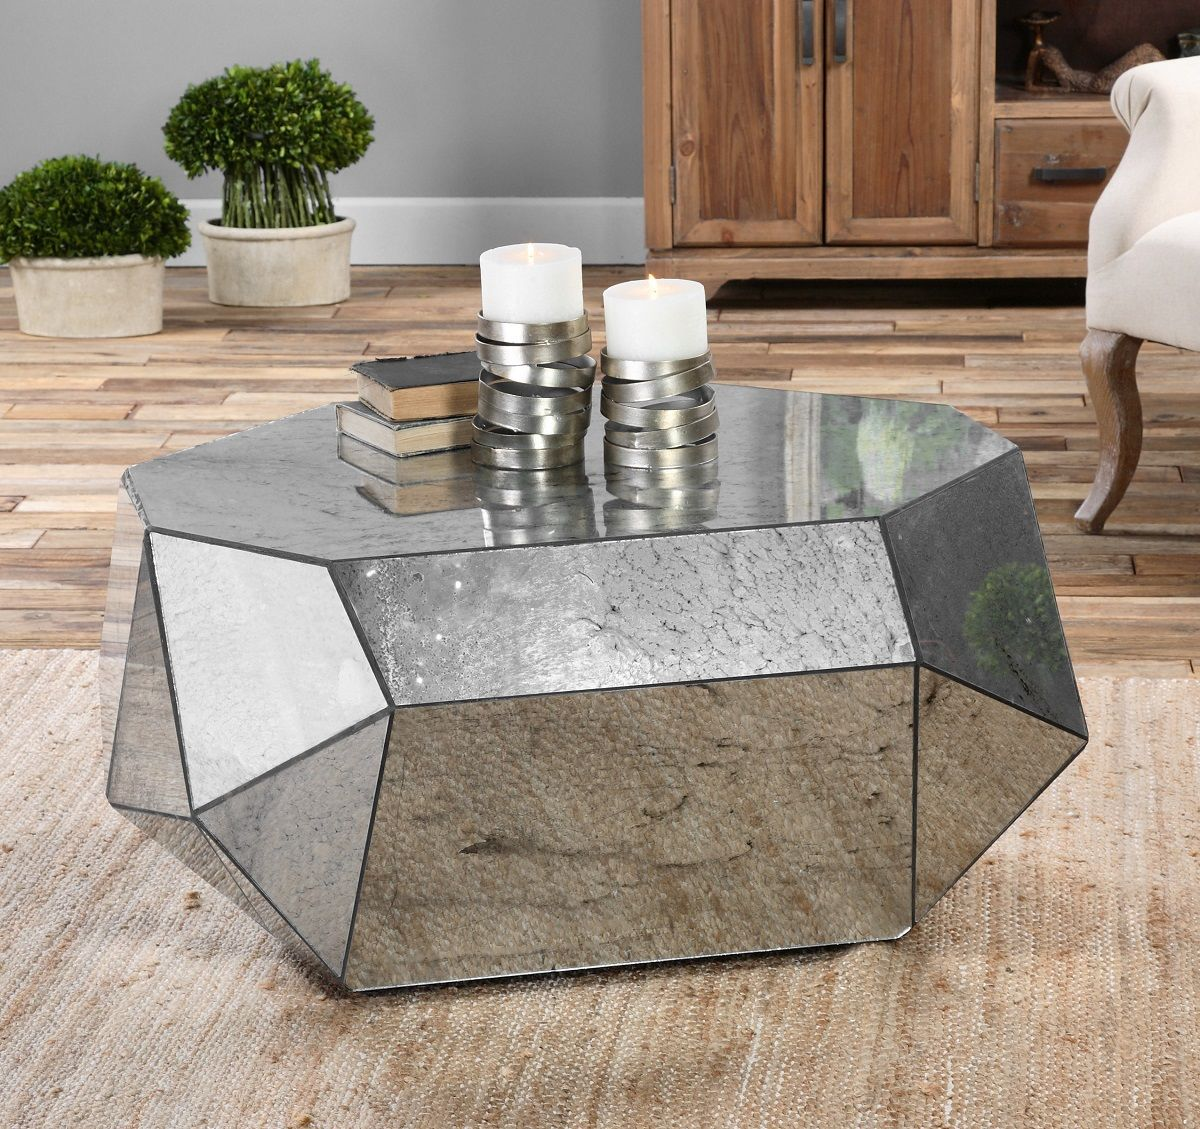 Pure Geometry From All The Angles Our Uttermost Antheia Mirrored Polygon Coffee Table Is Dramatically Antiqued Mirror Reflecting Light In Many Directions